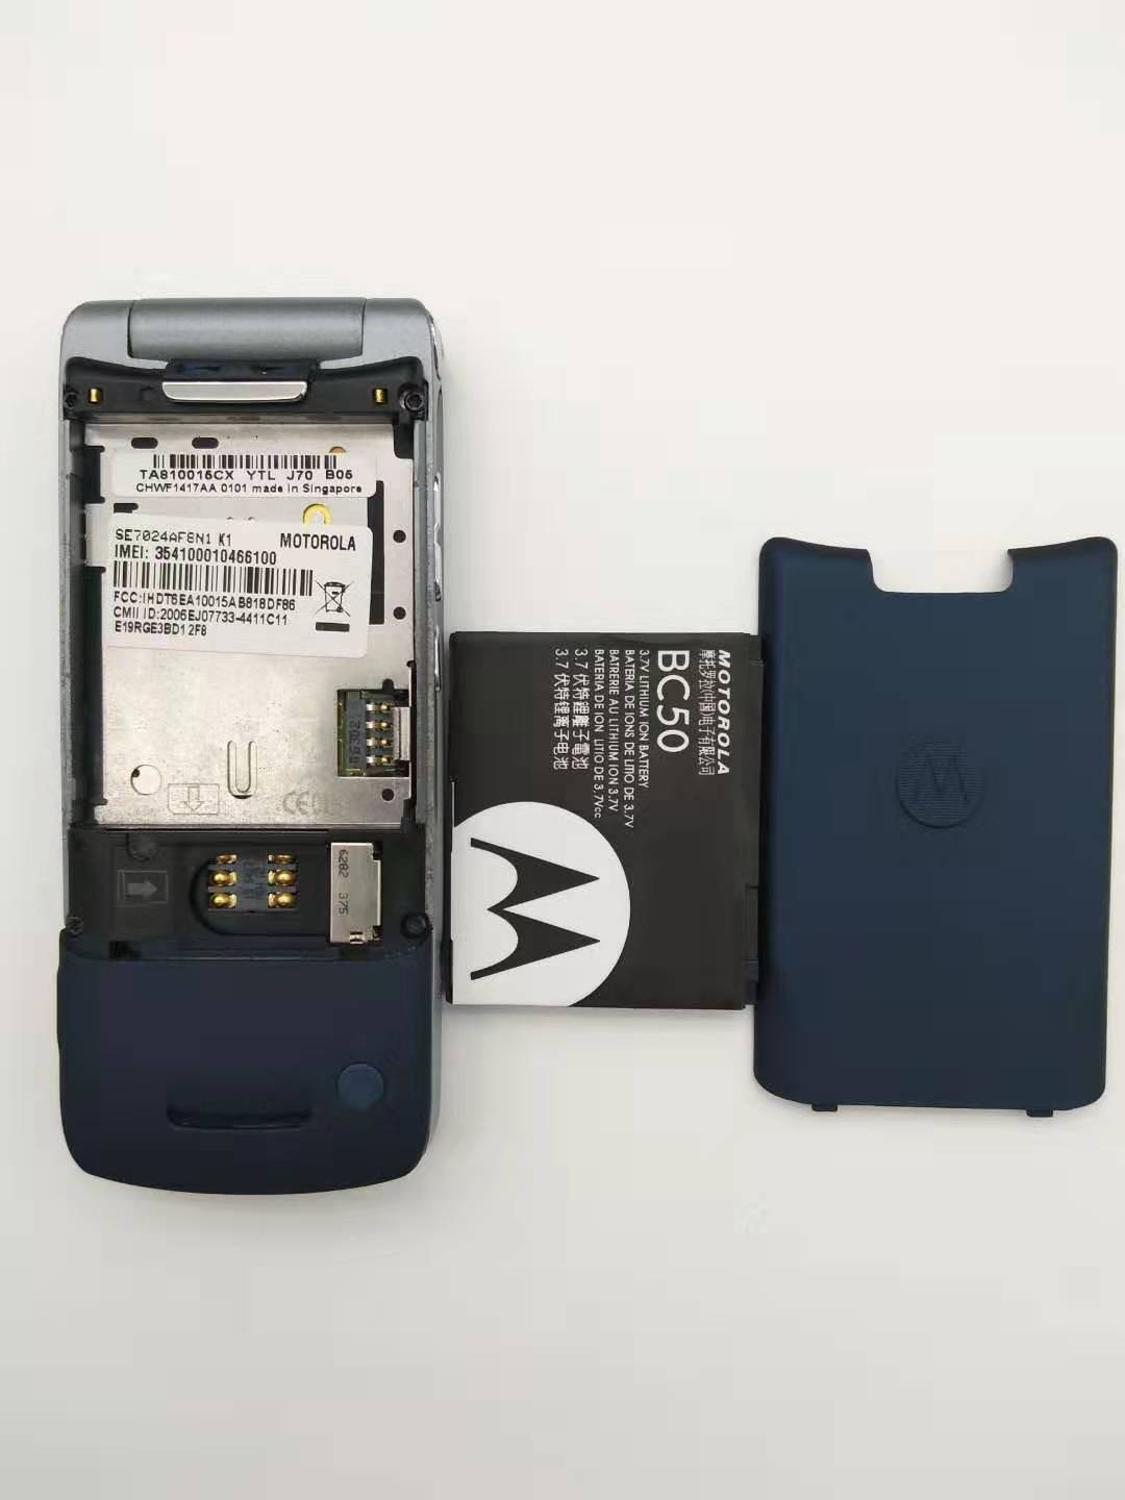 Купить с кэшбэком 100% Original Motorola Krzr K1 Flip Unlocked GSM Bluetooth MP3 FM Radio Mobile phone Refurbished Free shipping